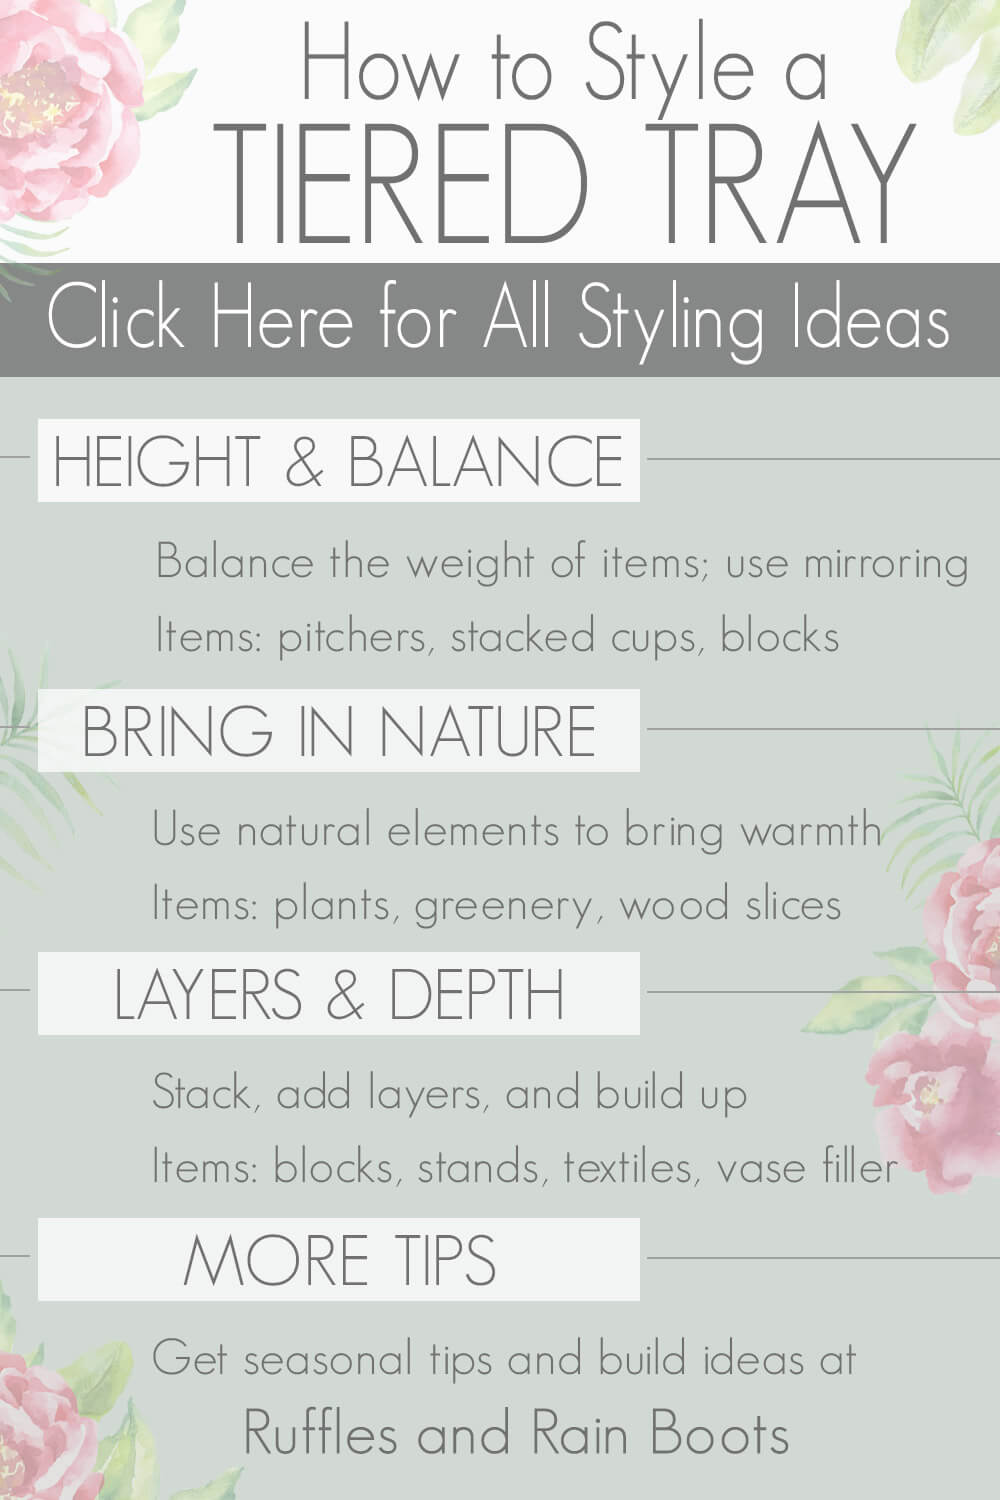 infographic on how to style a tiered tray